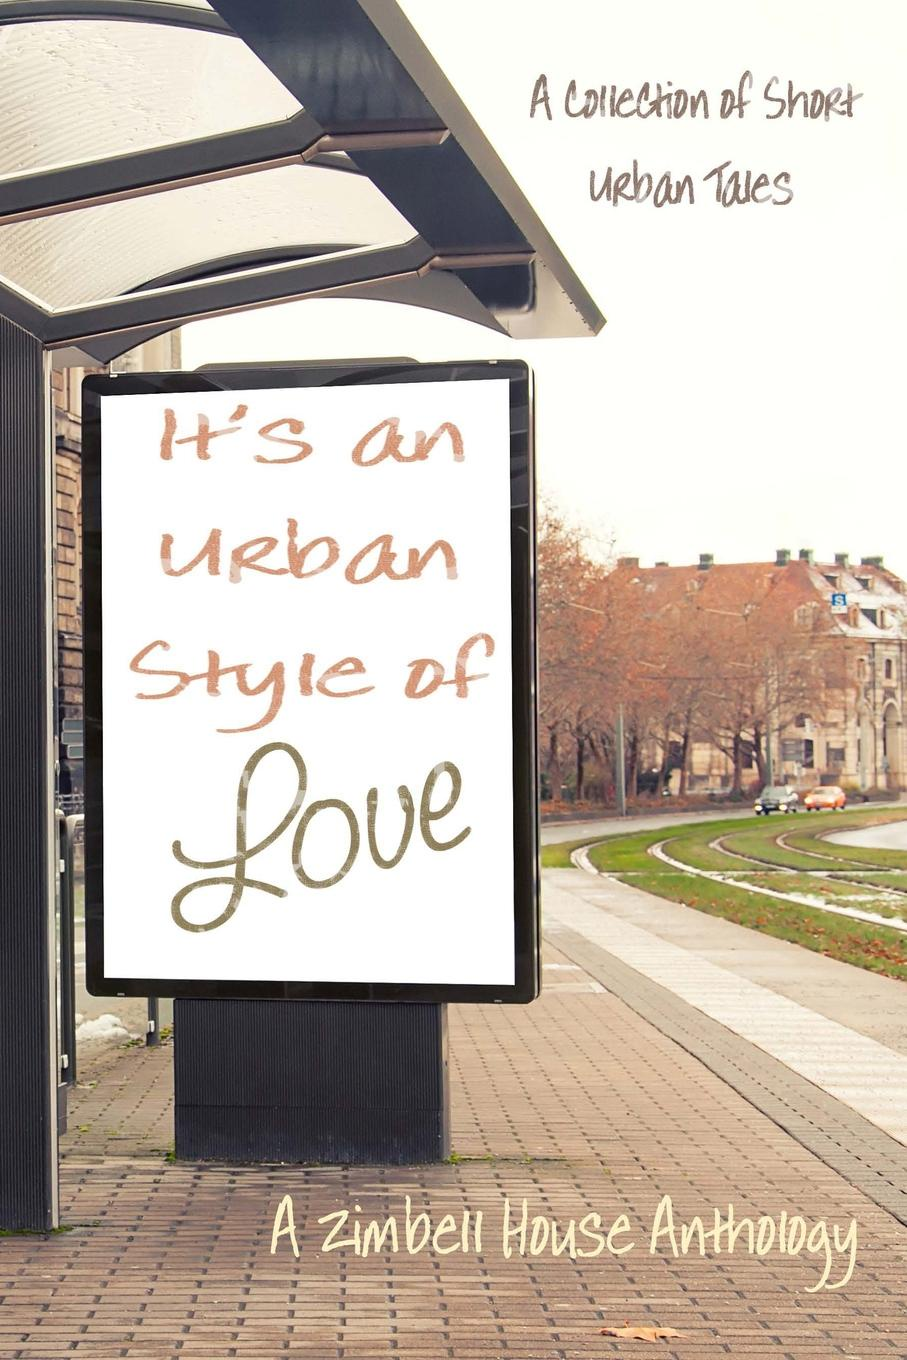 Zimbell House Publishing It.s an Urban Style of Love. A Collection of Short Urban Tales: A Zimbell House Anthology недорго, оригинальная цена